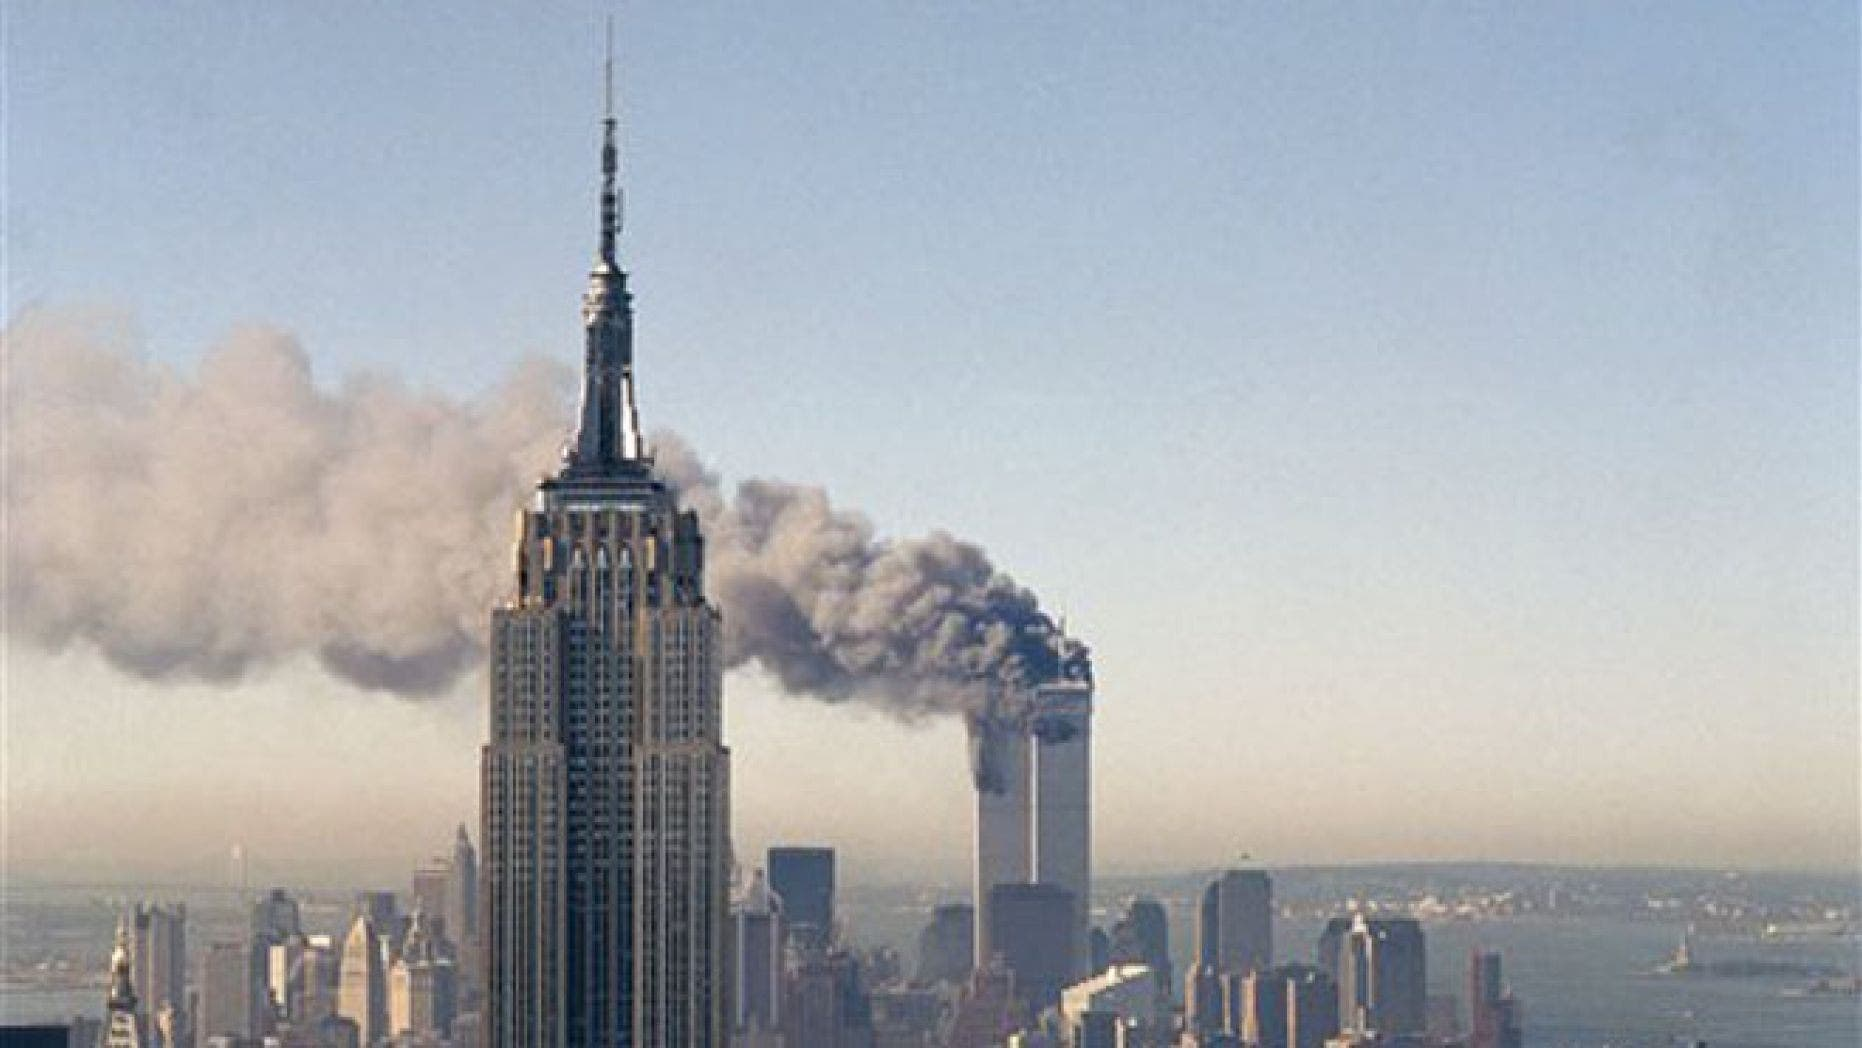 Westlake Legal Group Sept11WTC091119 This Day in History: Sept. 11 fox-news/us/this-day-in-history fox news fnc/us fnc f192b9ac-e81d-51c8-9cd6-135e93851ec3 article